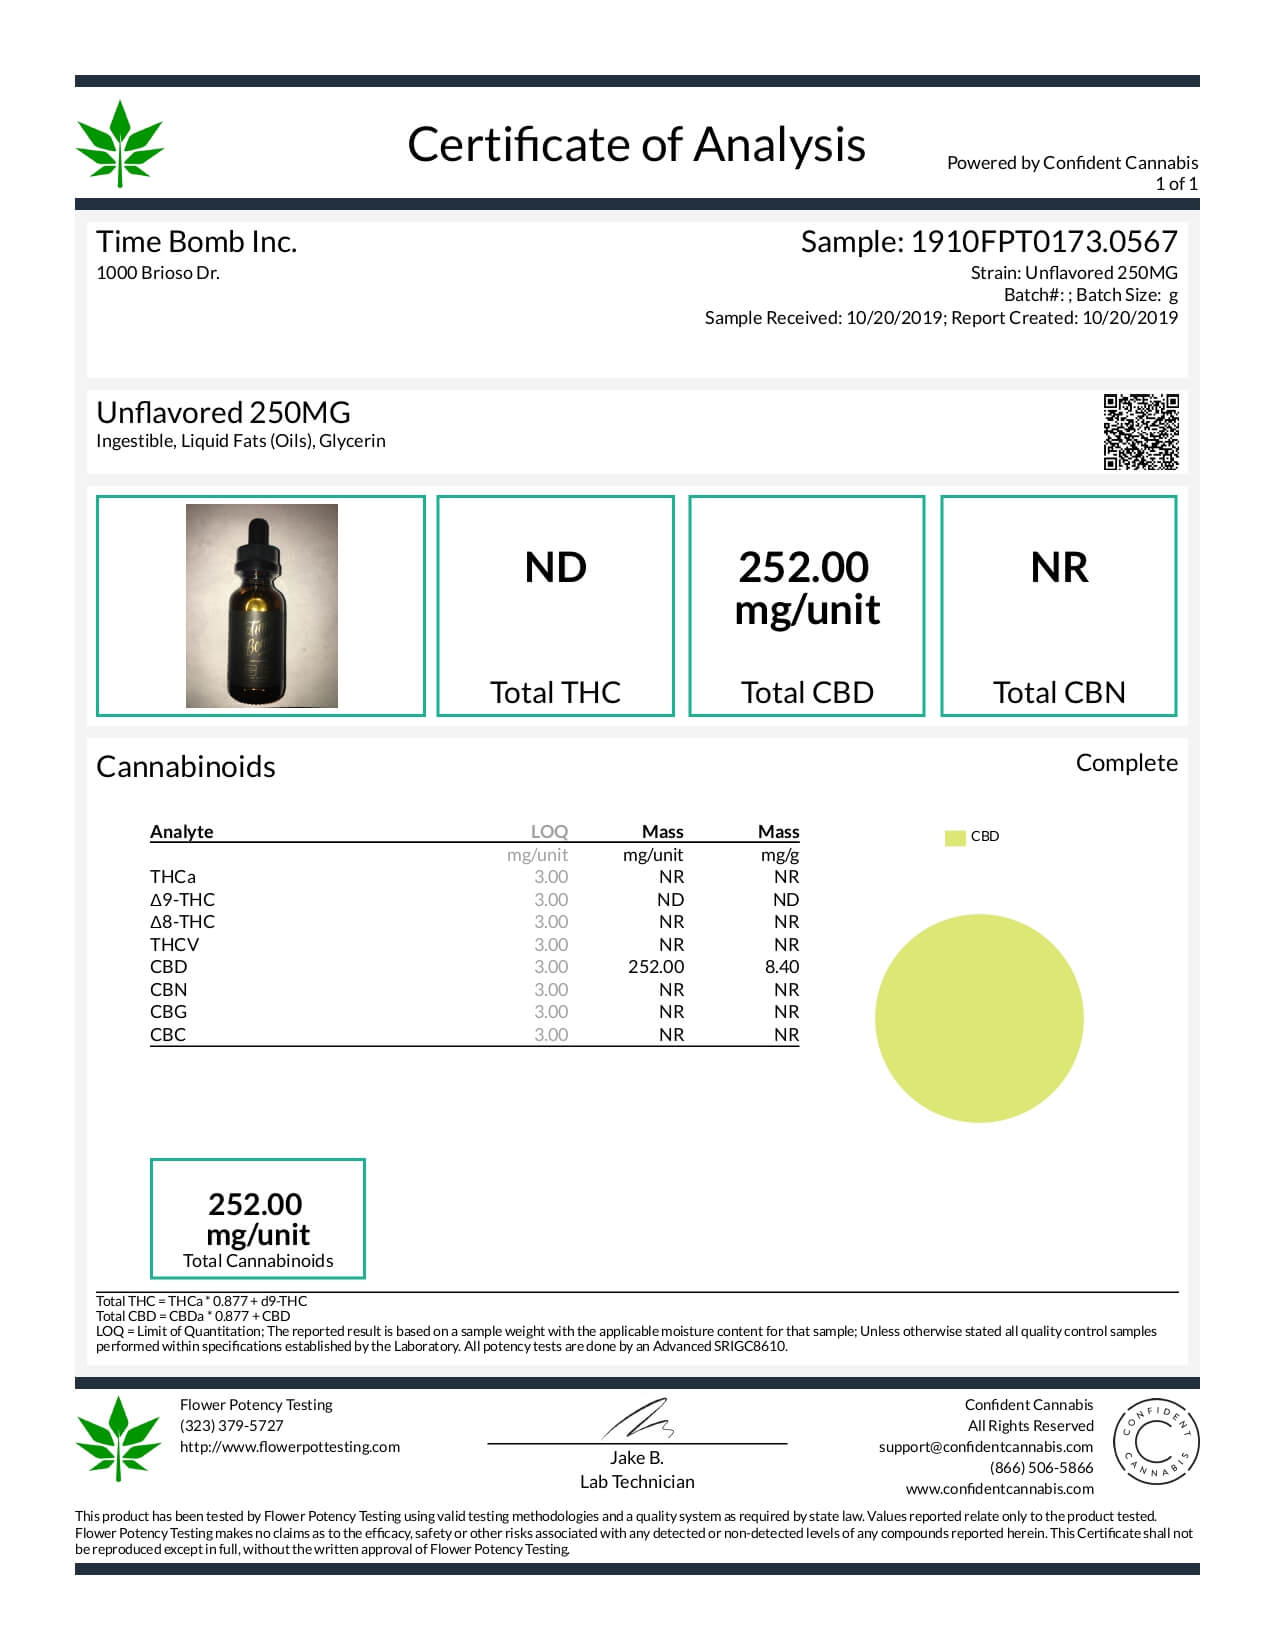 Time Bomb Extracts CBD Tincture Unflavored 250mg Lab Report